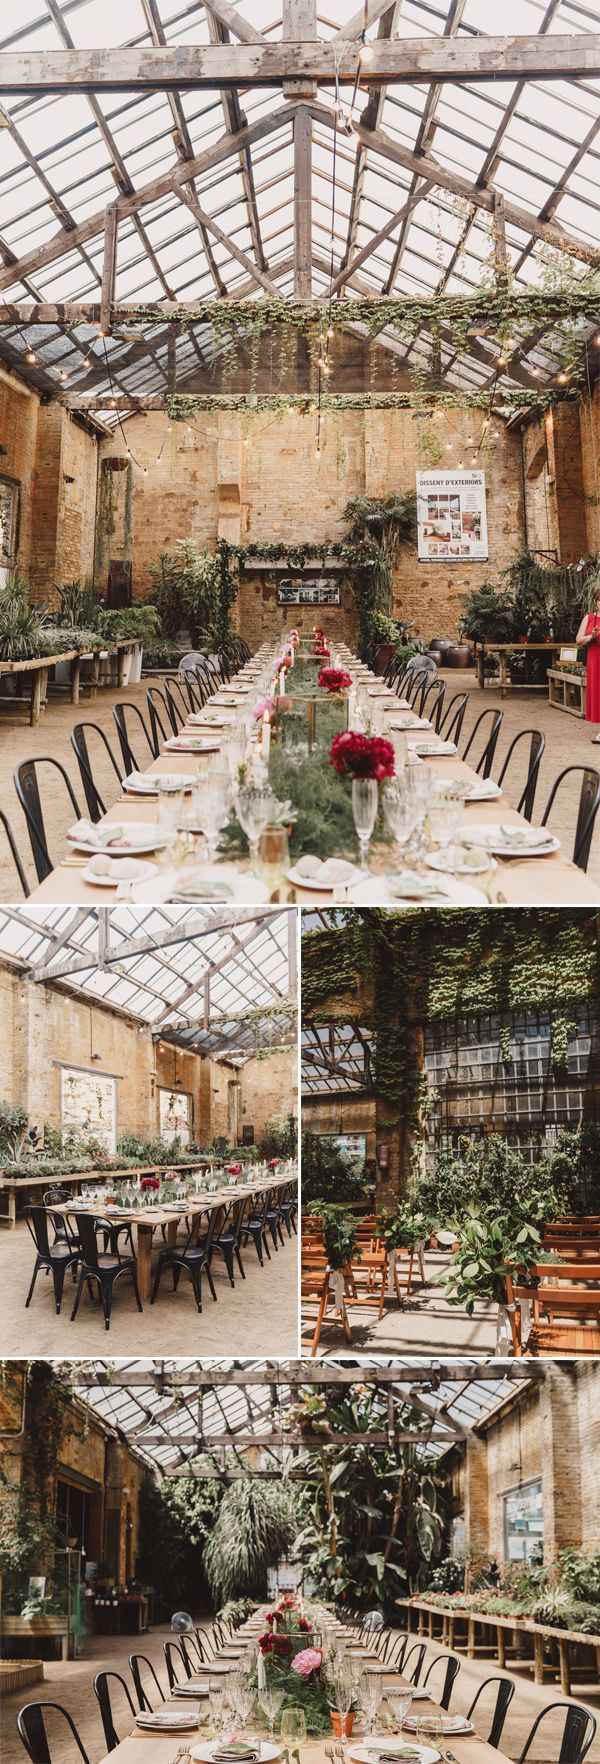 From California to Ireland to South Africa, these breathtaking greenhouse venues offer a naturally beautiful setting for the wedding of your dreams.